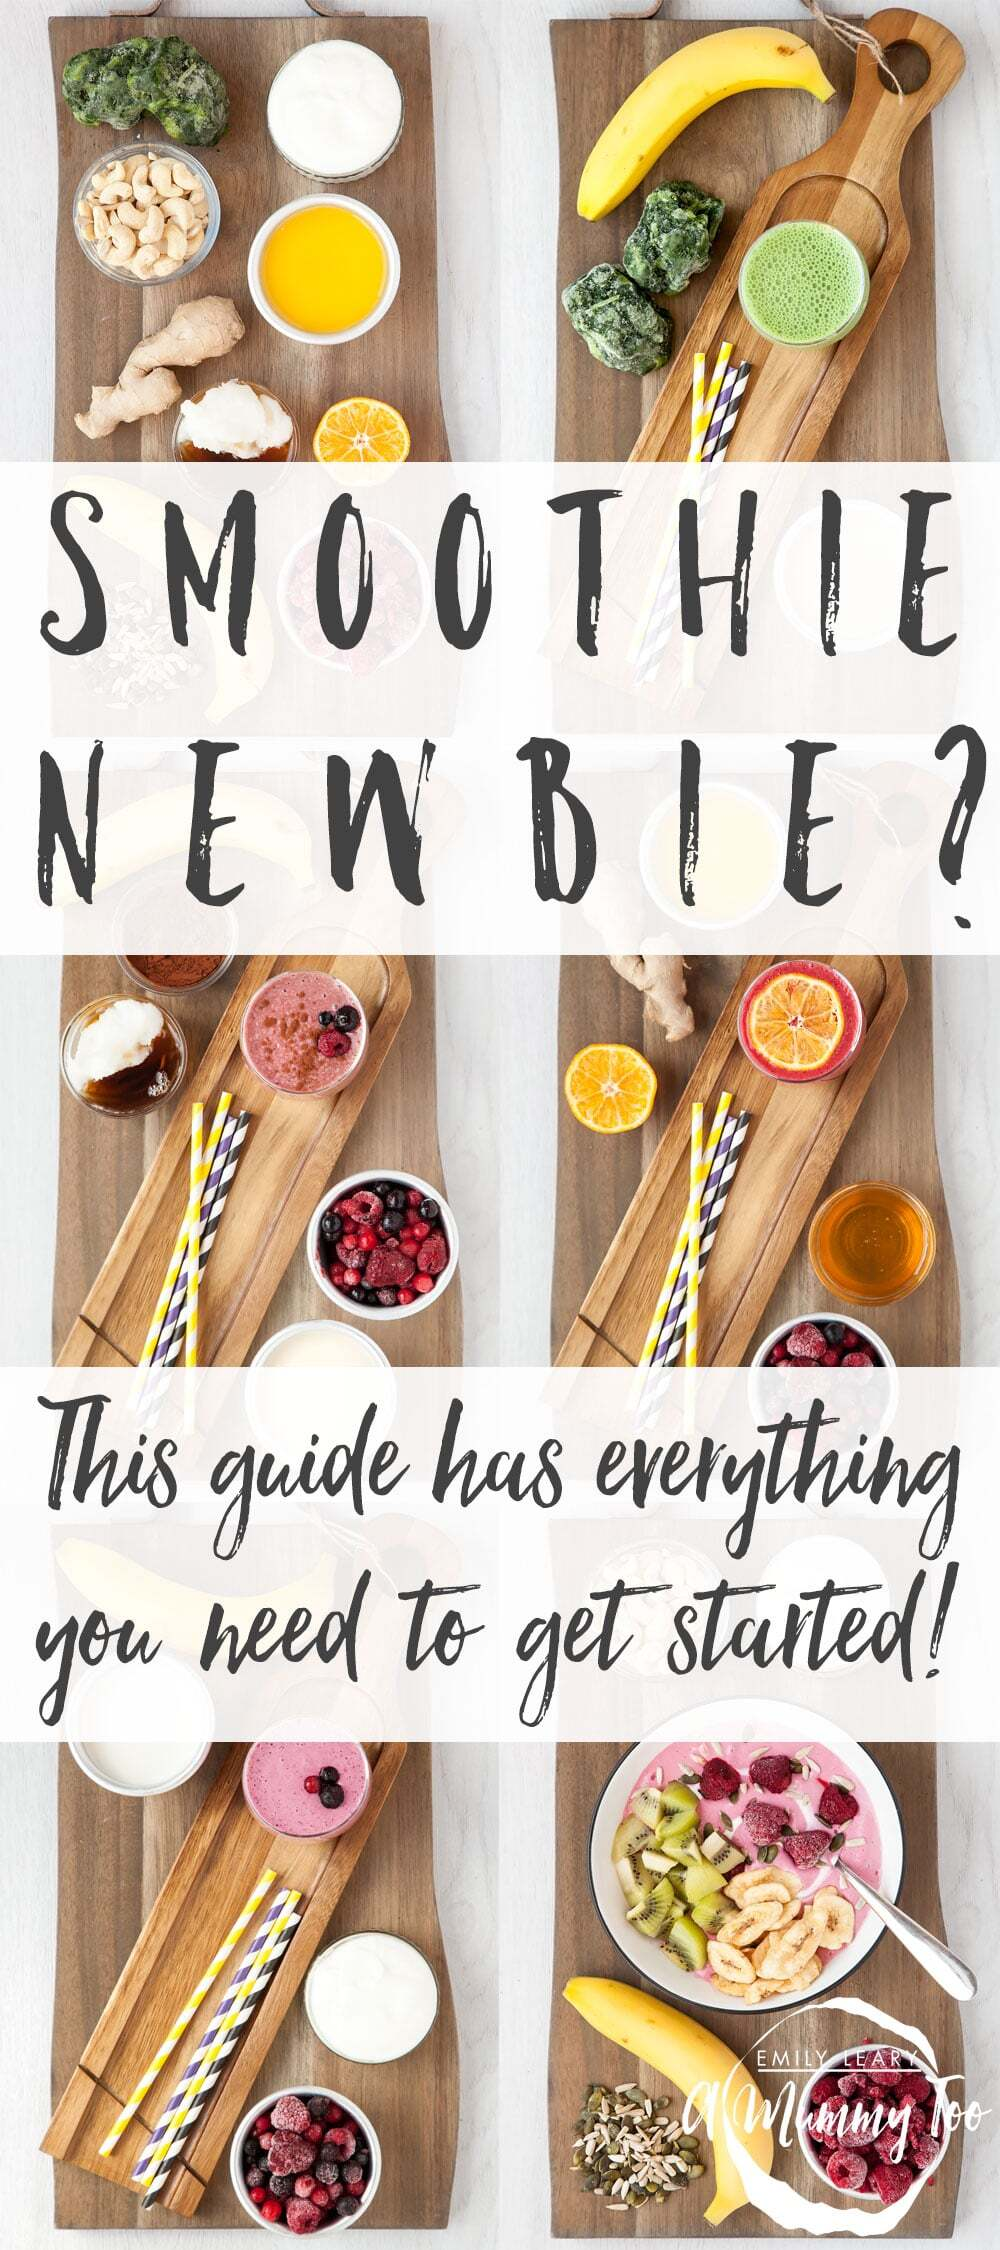 New to smoothies? These recipes have got you covered